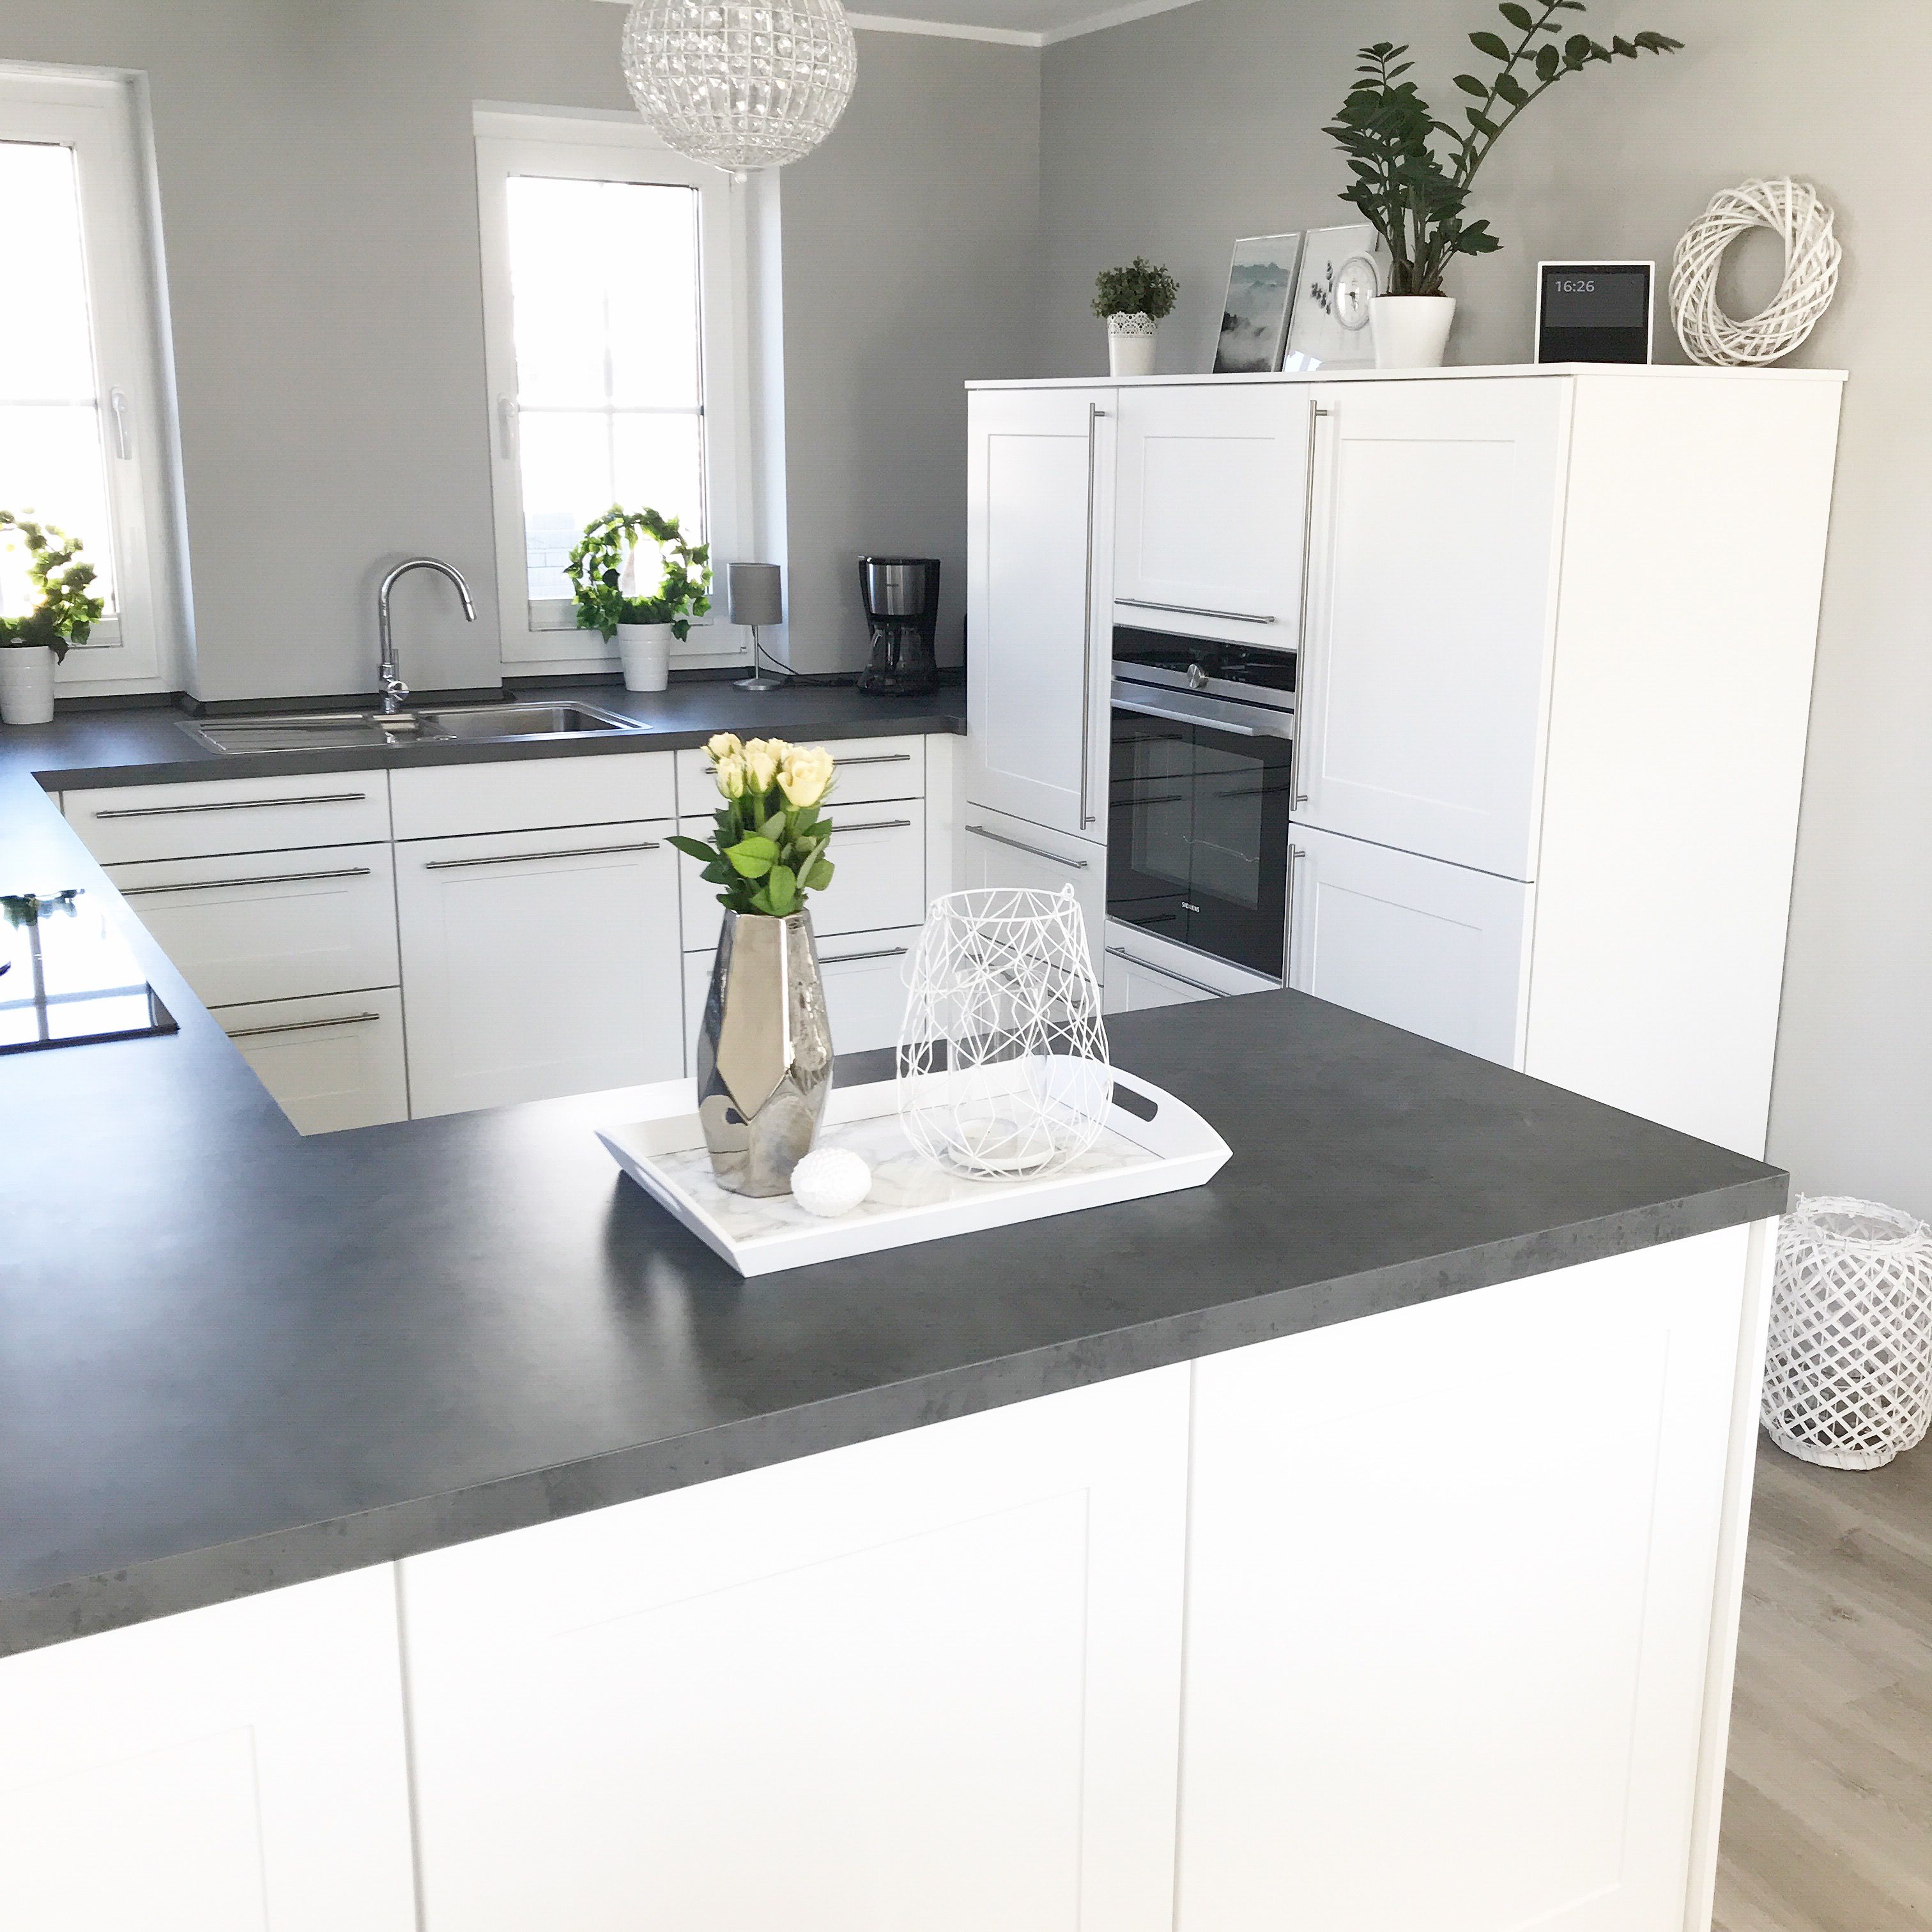 Instagram Wohn Emotion Landhaus Kuche Kitchen Modern Grau